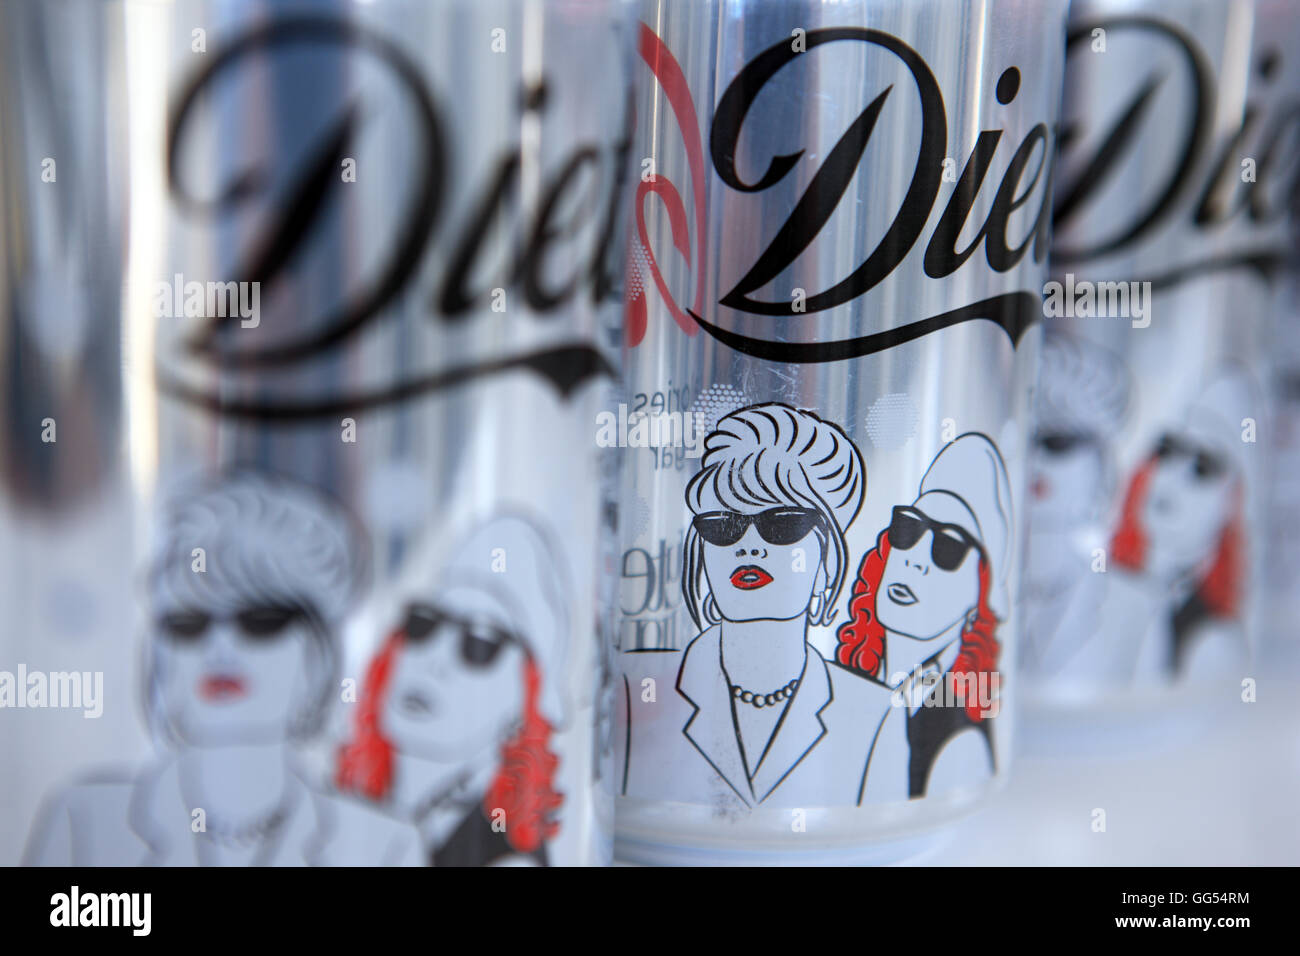 Diet Coke cans promoting the Absolutely Fabulous new movie - Stock Image